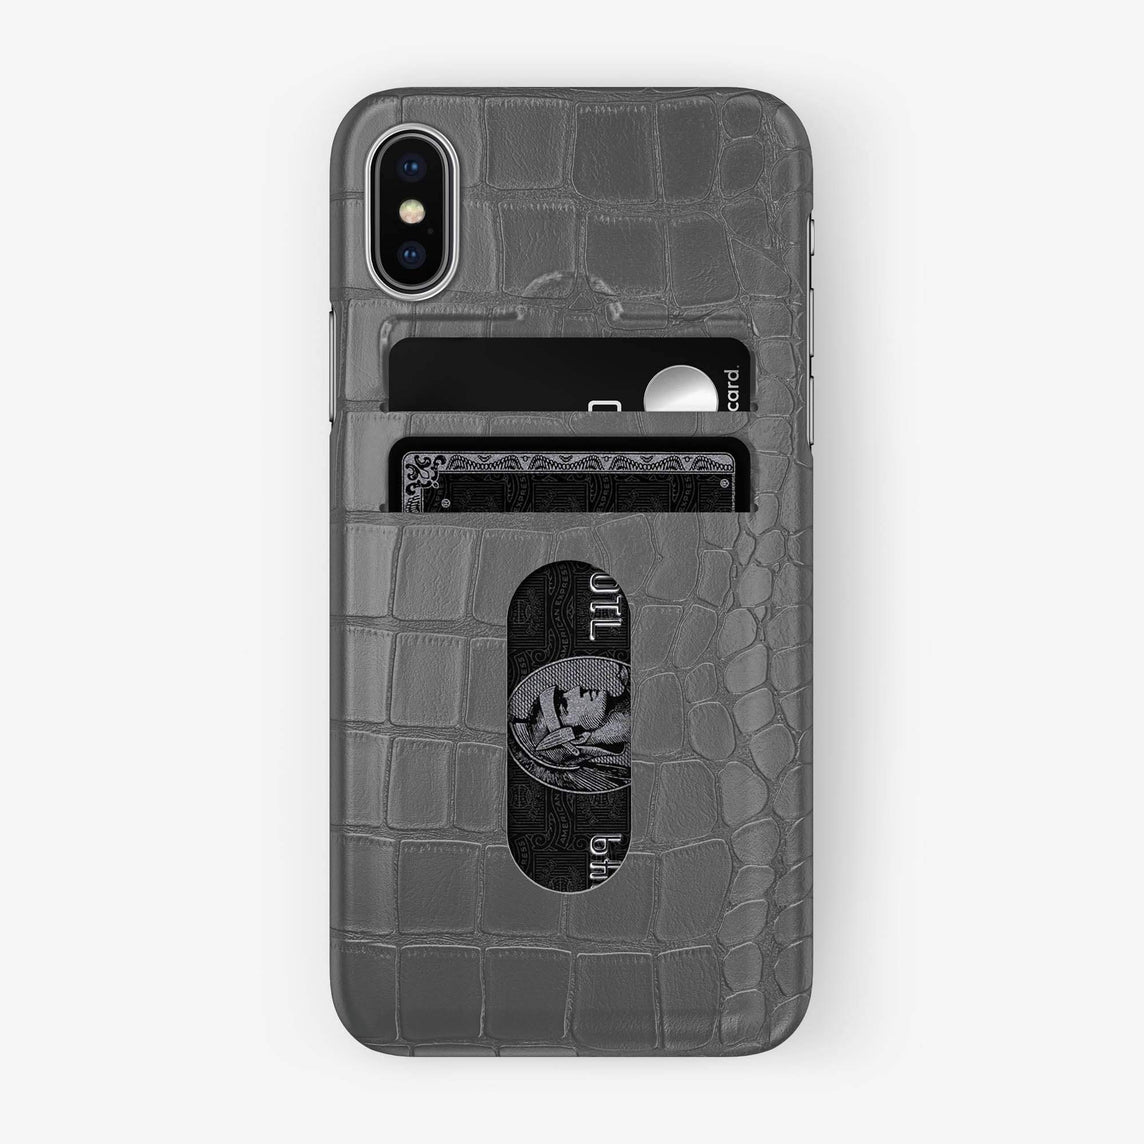 Alligator Card Holder Case iPhone Xs Max | Grey - Stainless Steel - Hadoro